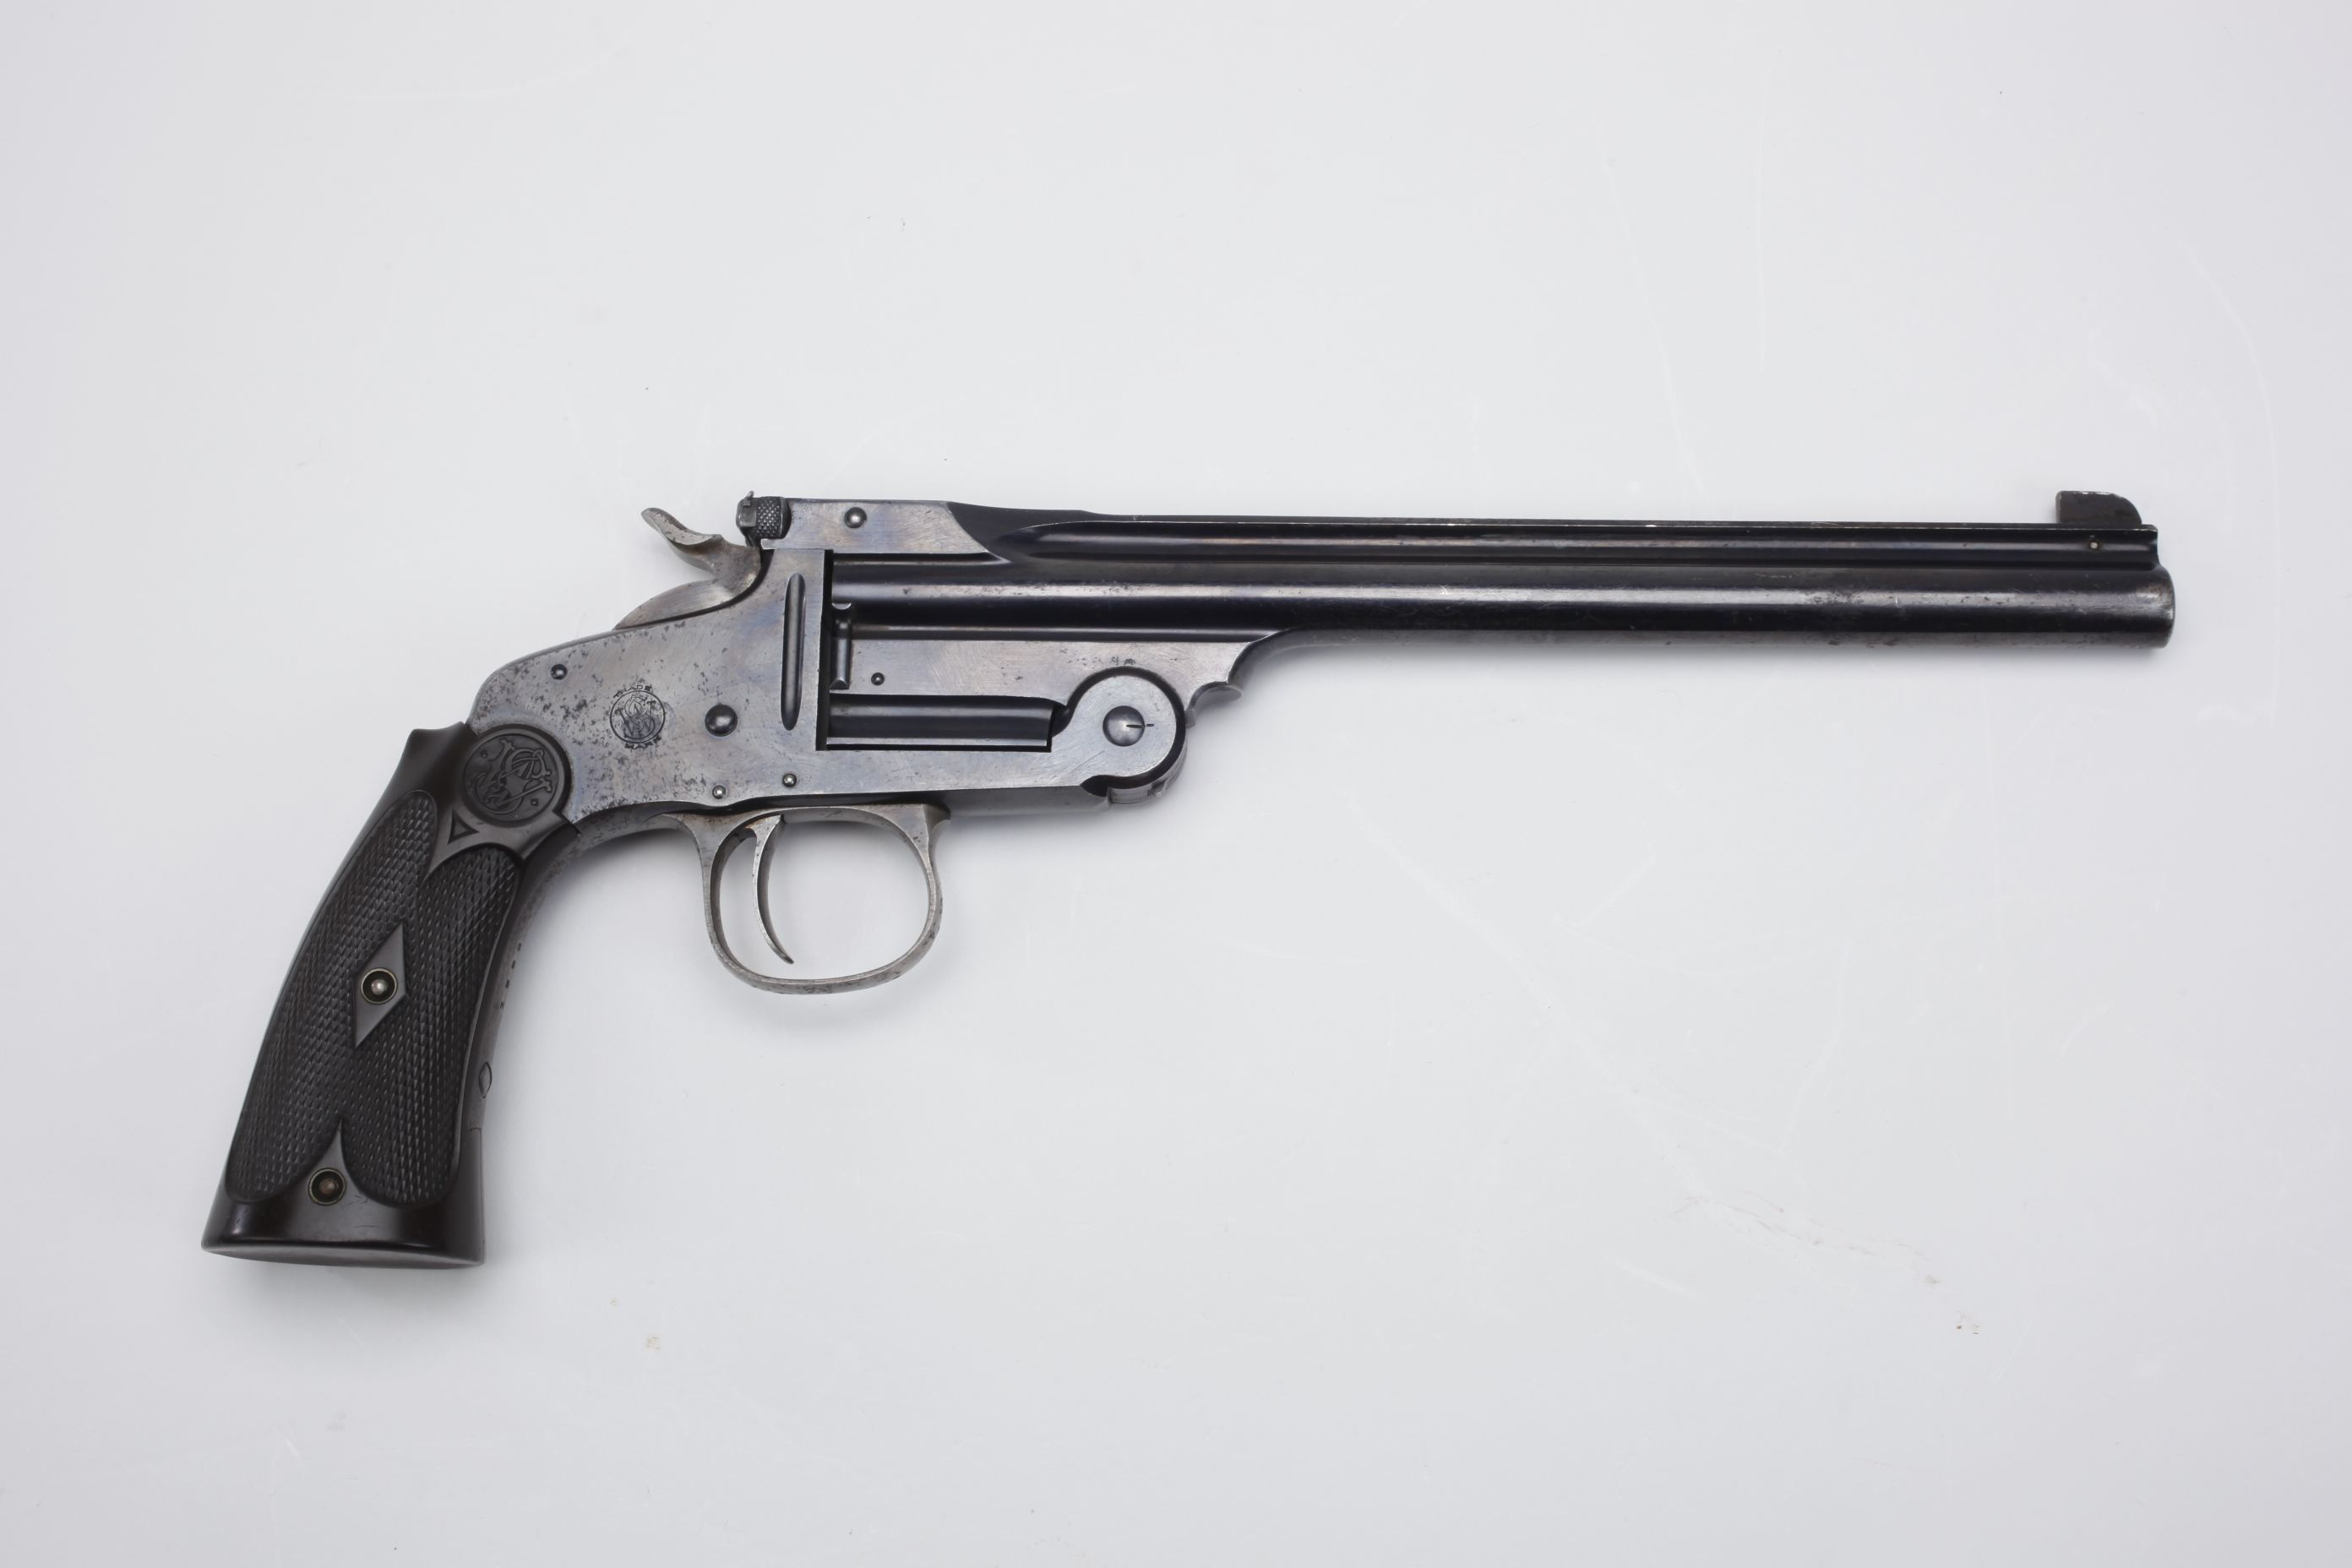 Smith & Wesson Second Model Single Shot Pistol